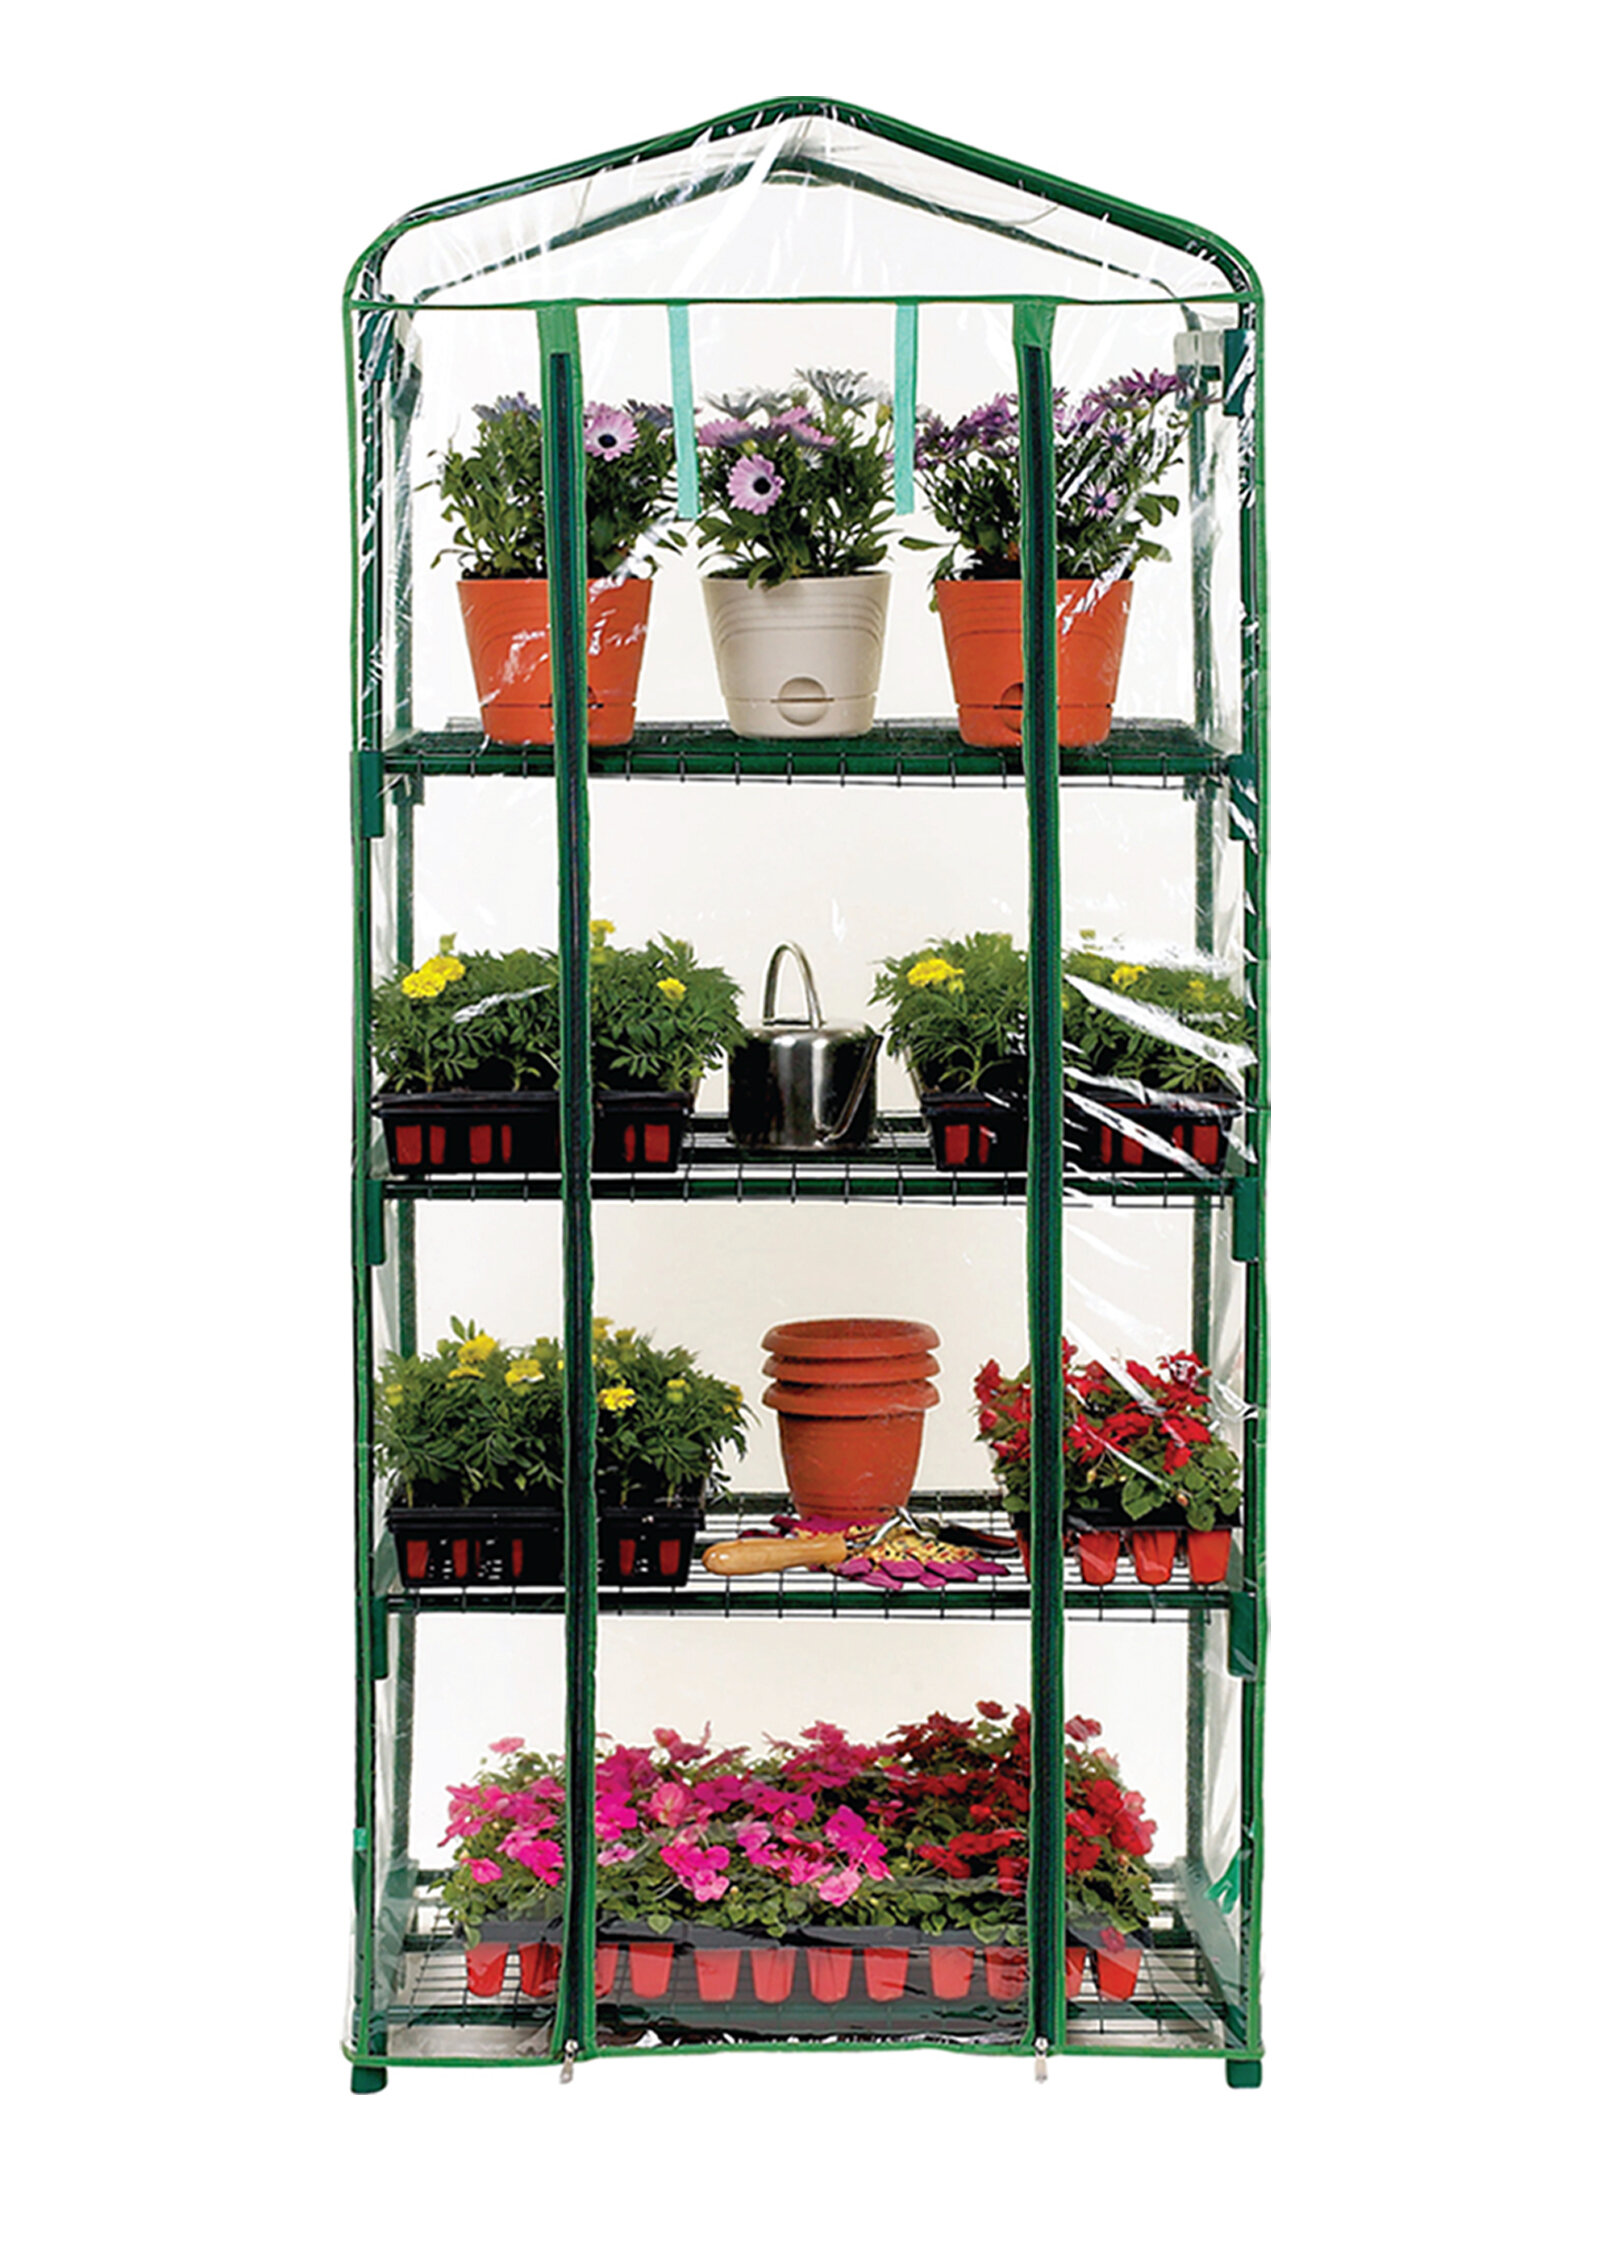 New 4 Tier Greenhouse Portable Four Shelf Roll Up Front Panel With PVC Cover